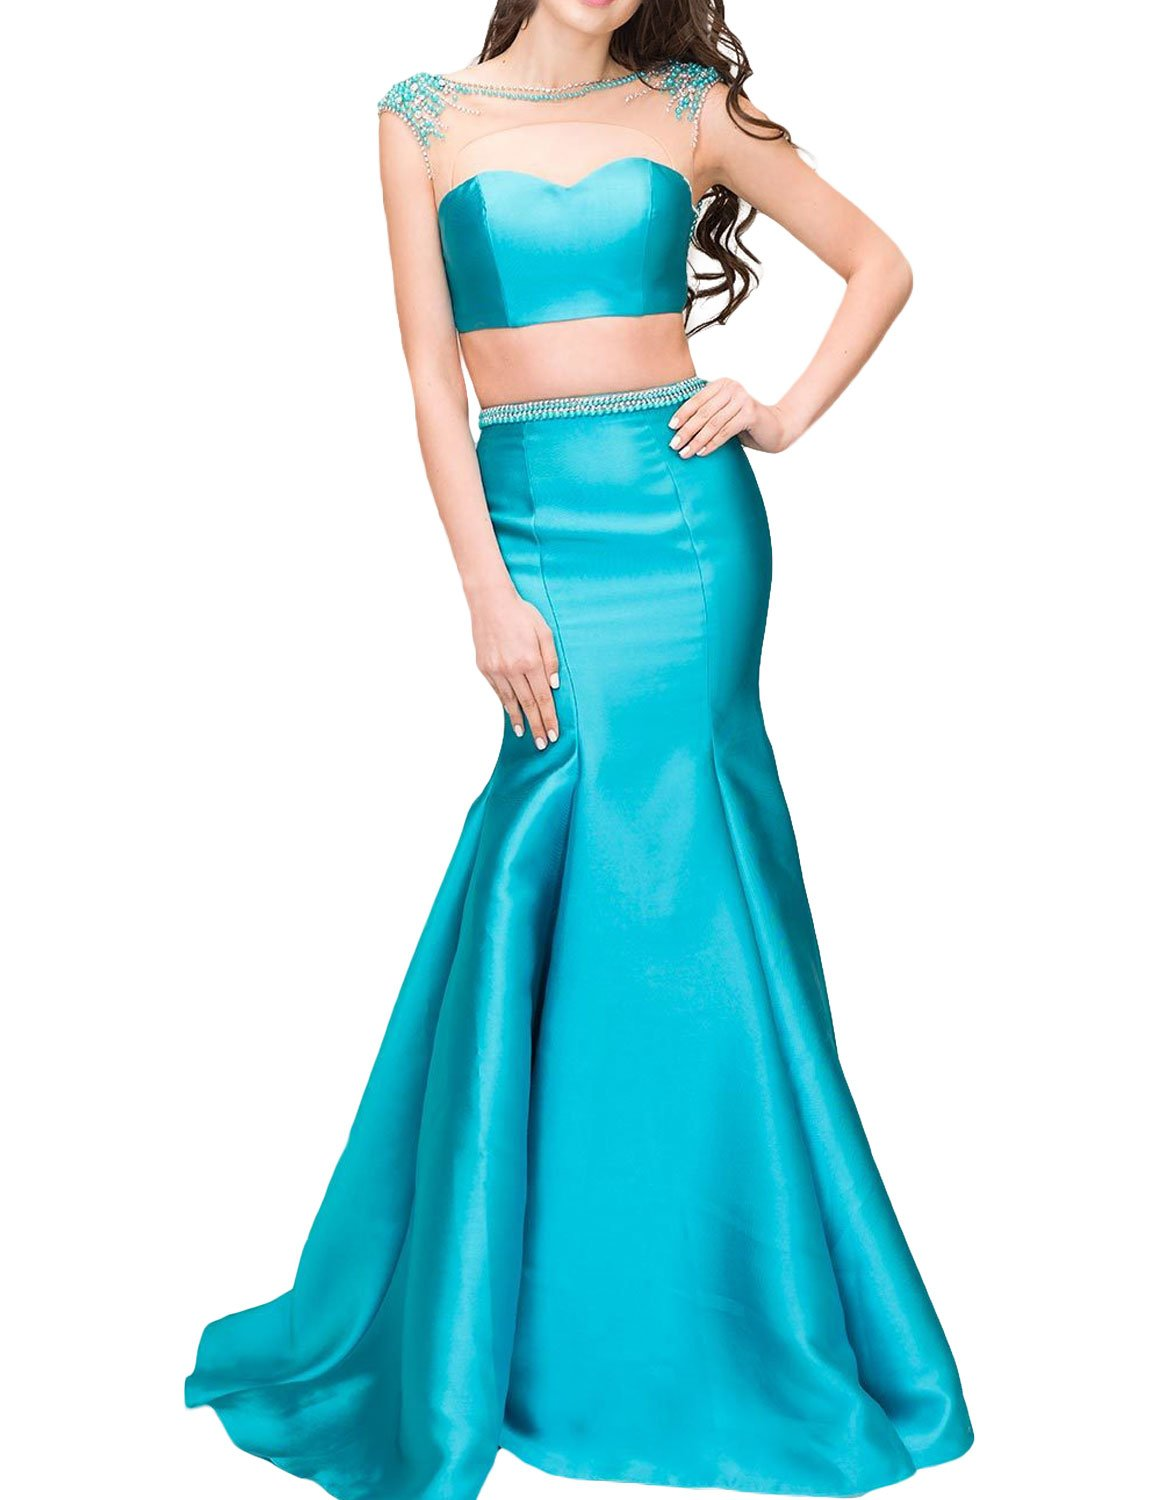 SeasonMall 2016 Two Pieces Satin With Beading Sweep Train Prom Dresses Size 0 Blue